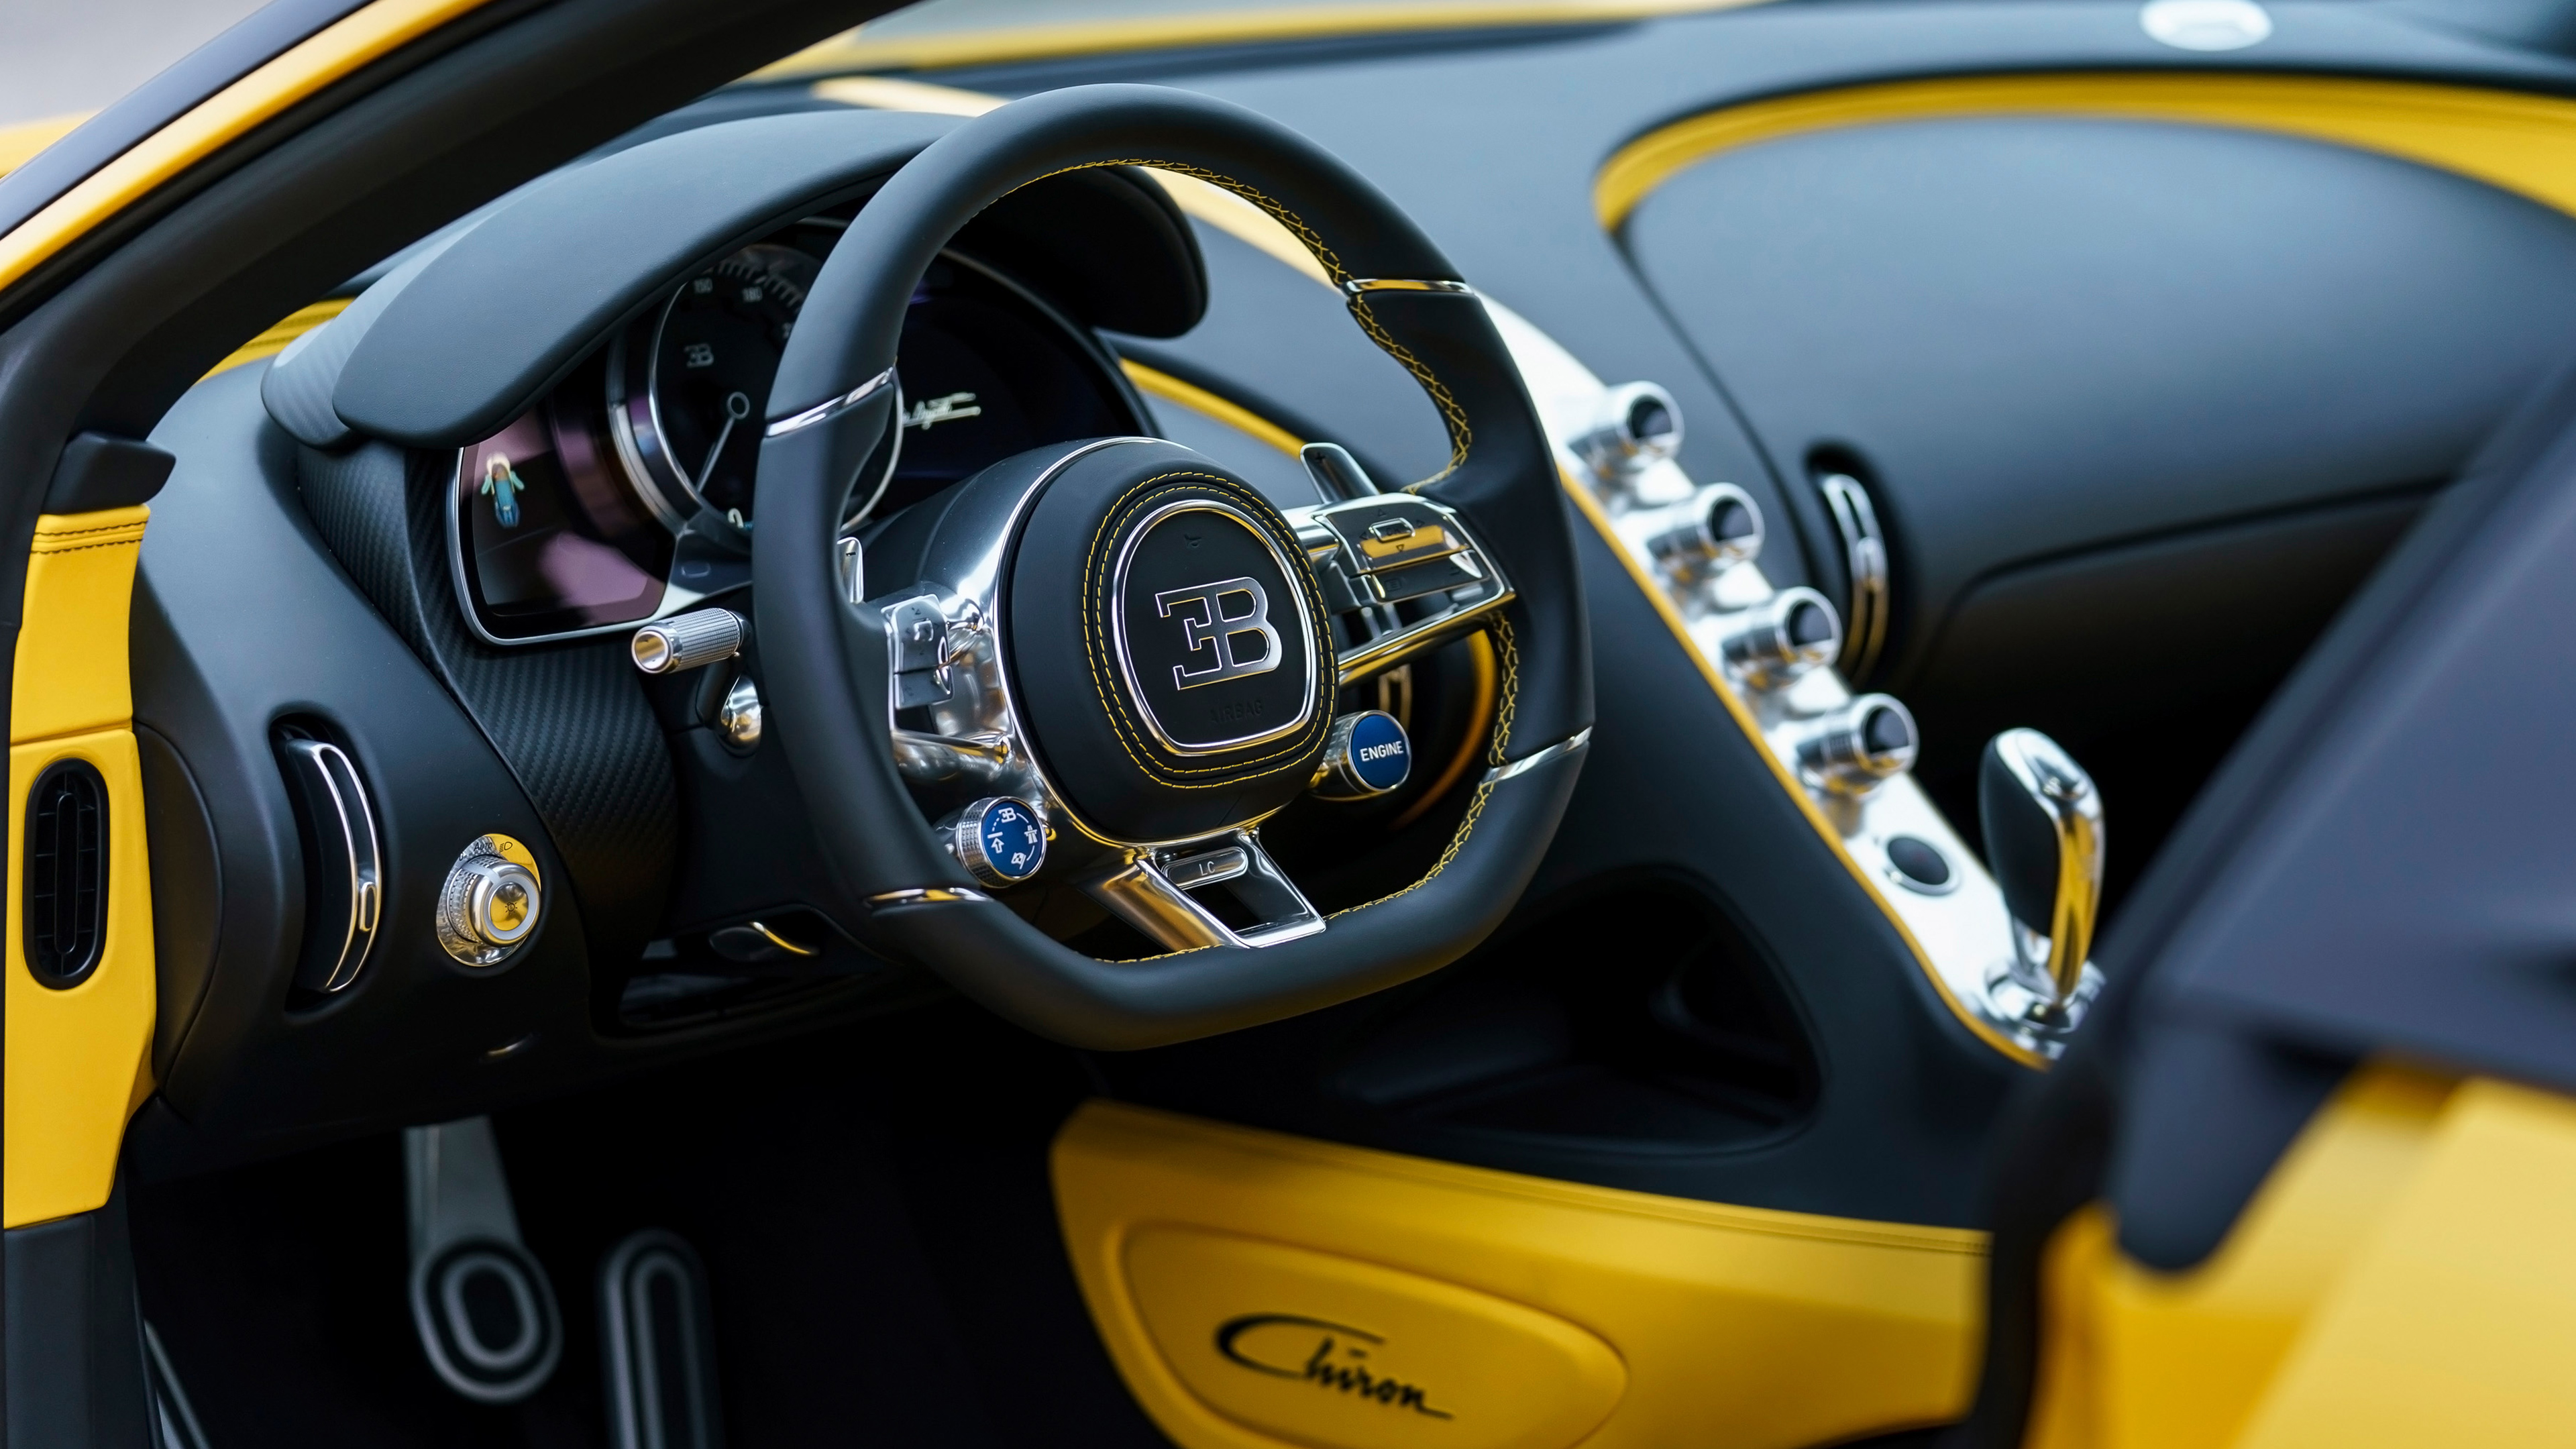 2018 bugatti chiron yellow and black interior wallpaper | hd car